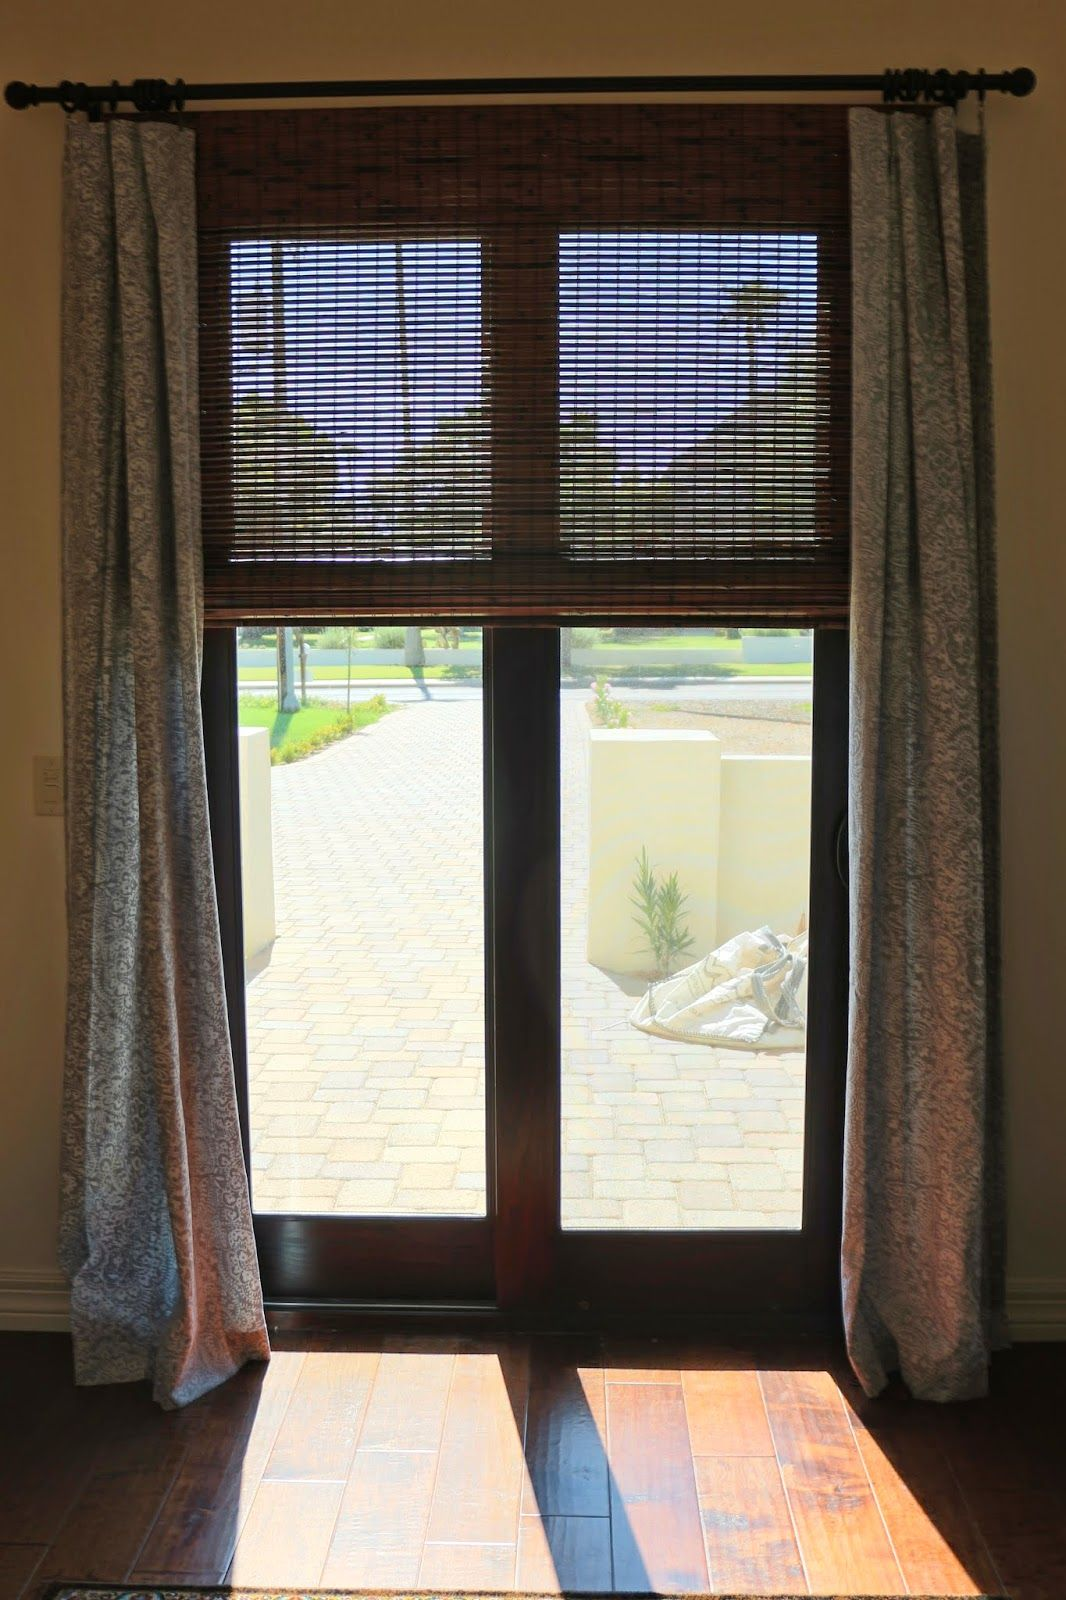 Used overstock to find the same blinds as lower that would allow the